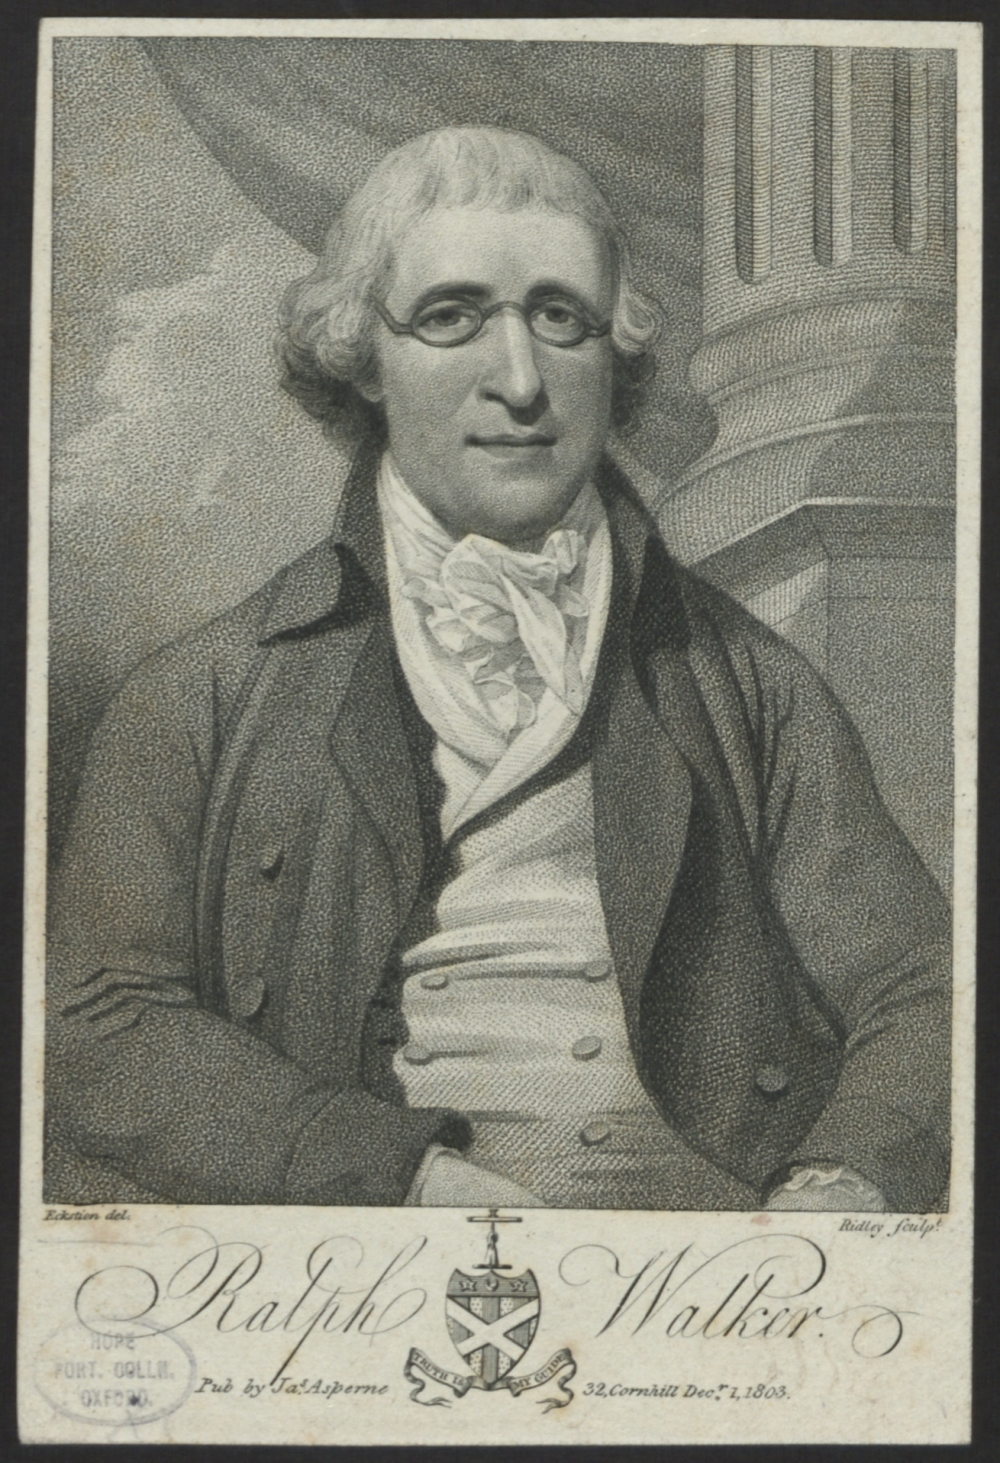 preview image for Print (Stipple Engraving) of Ralph Walker by Ridley, from original by Eckstein, printed by J. Asperne, 32 Cornhill, [London], December 1st 1803